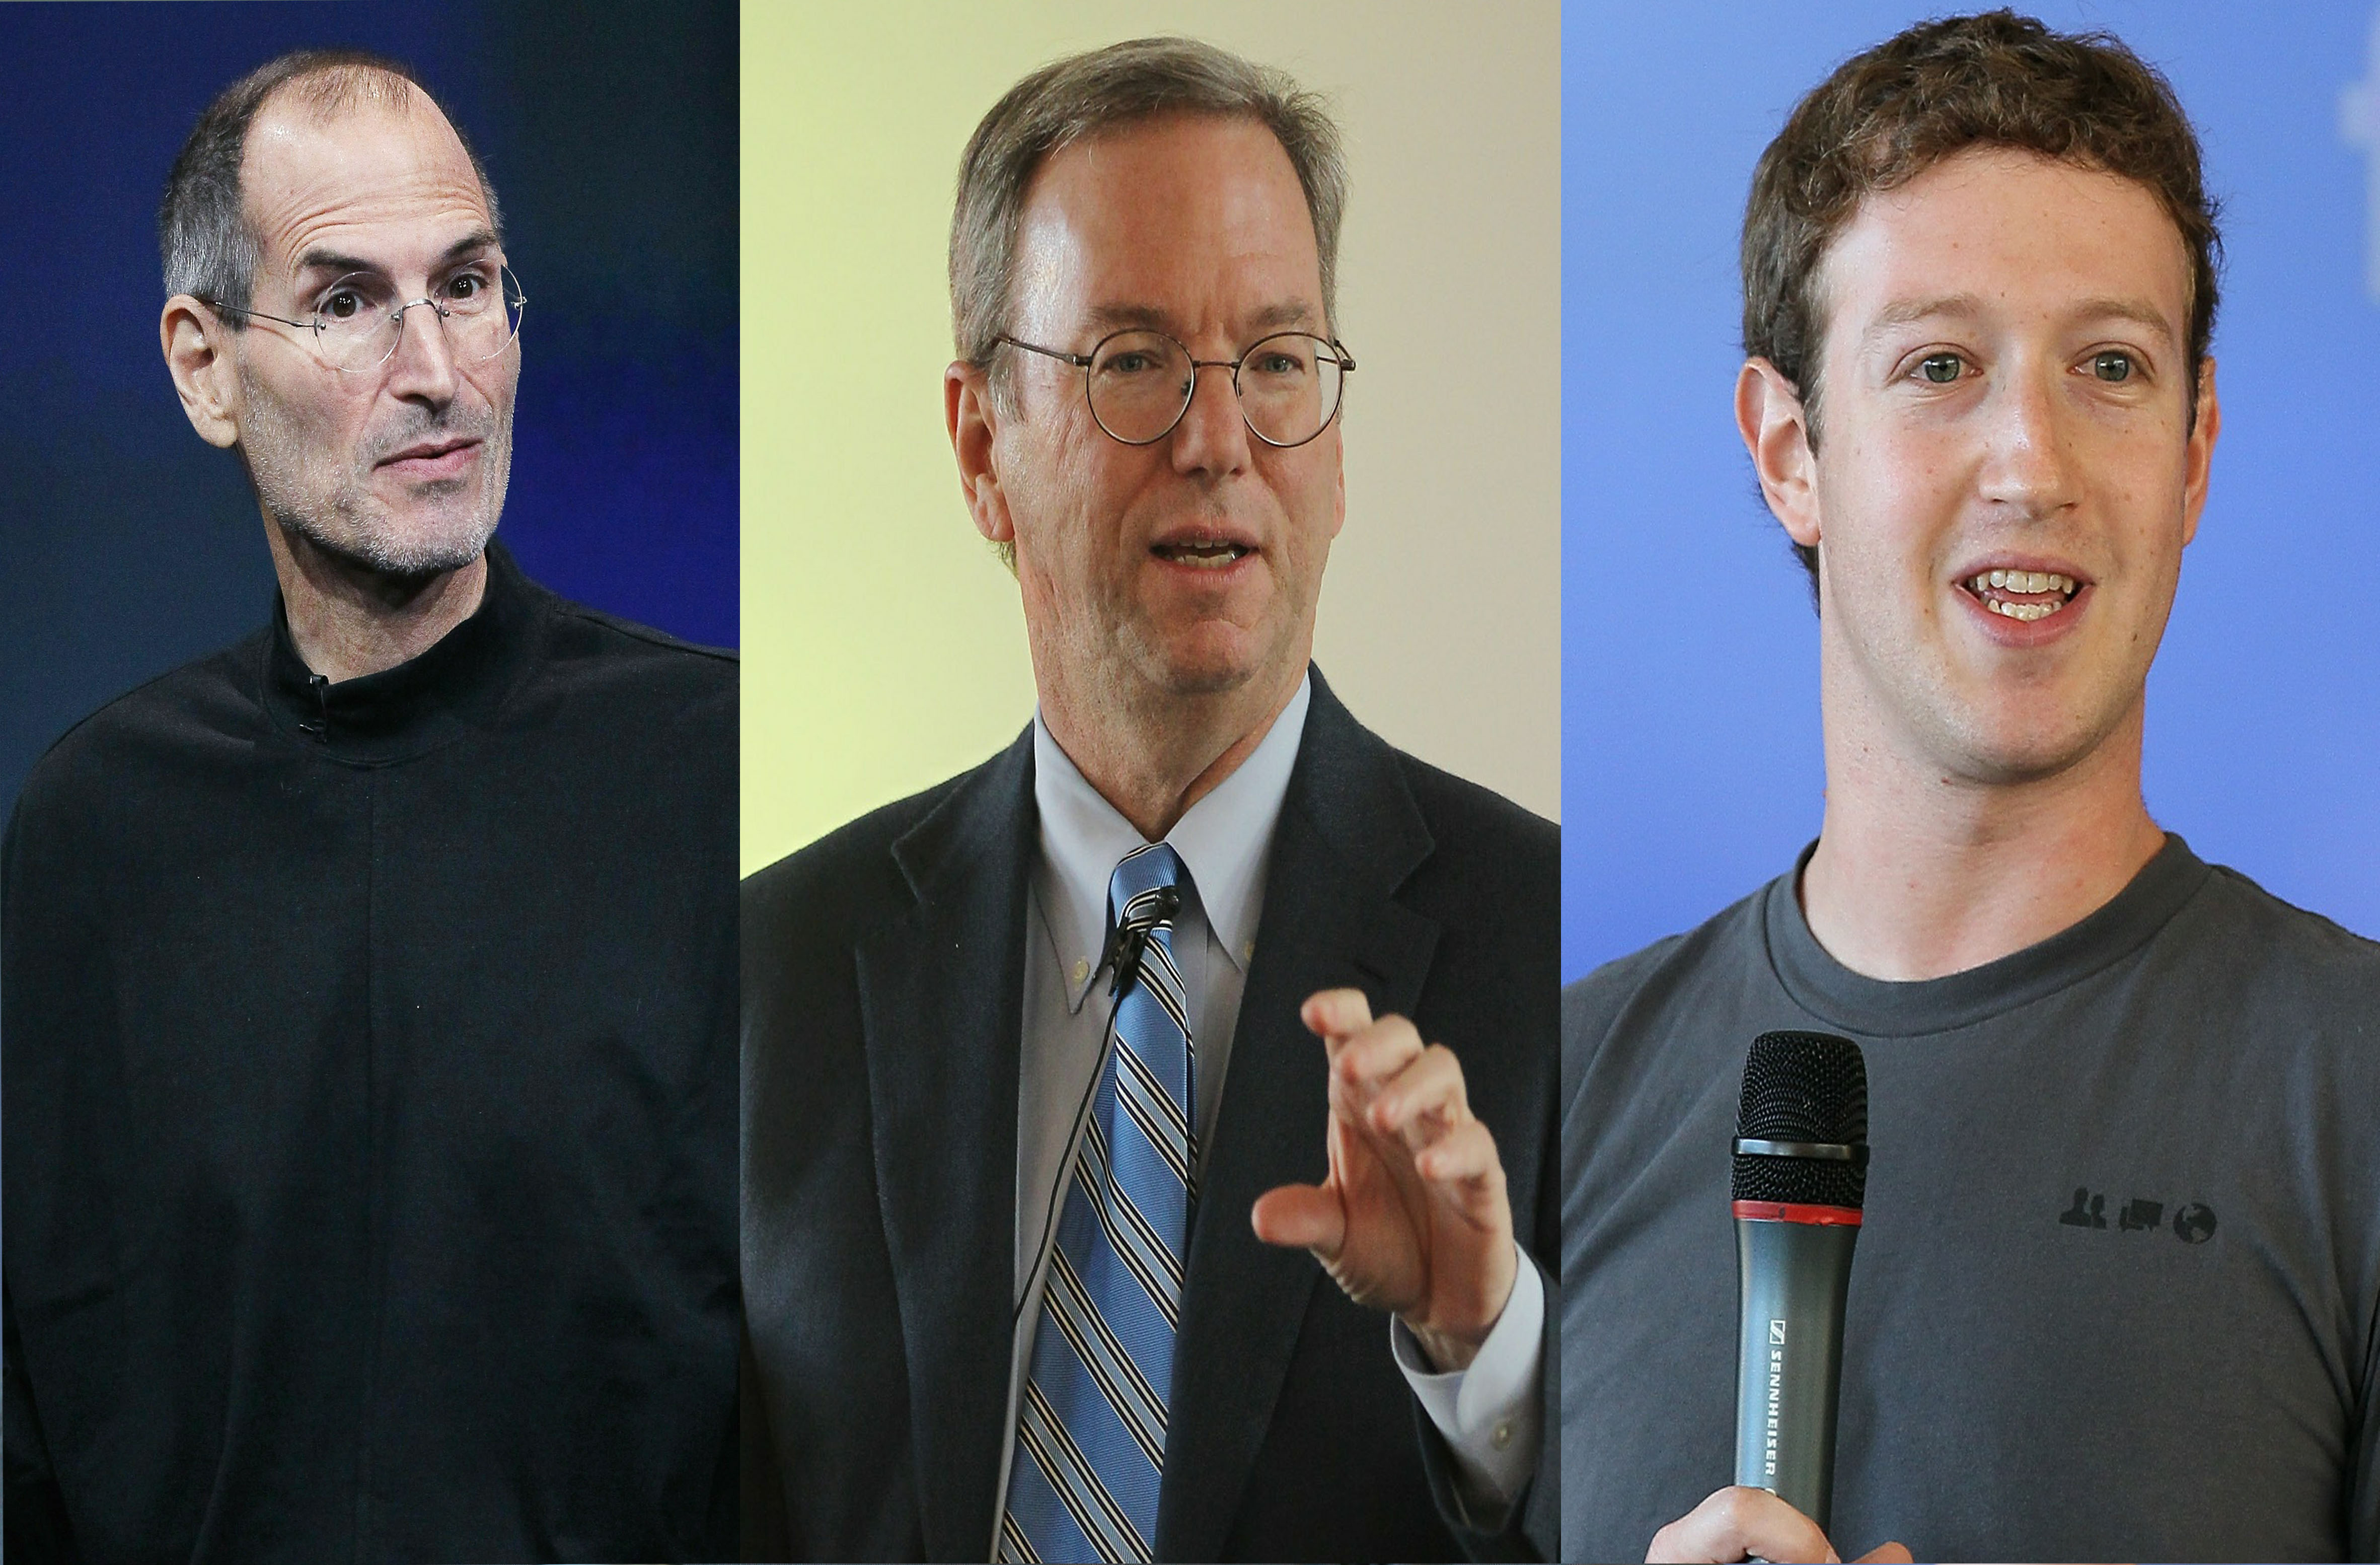 Obama 'friending' Zuckerberg, Jobs, Schmidt